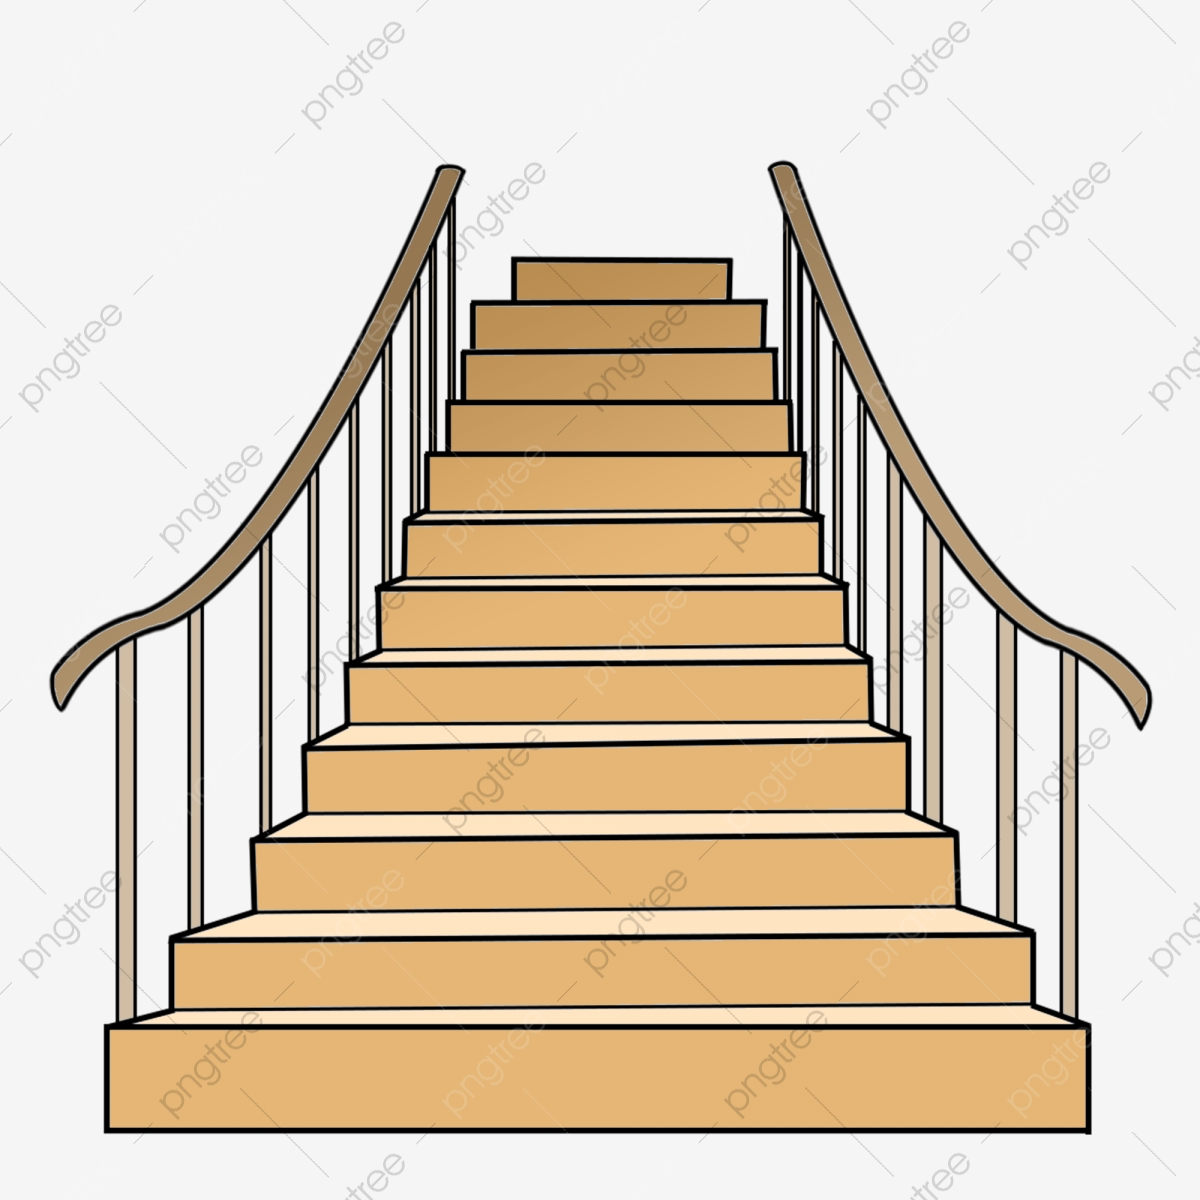 Stairs: Wooden Cartoon Stairs Illustration, Wooden Stairs, Yellow